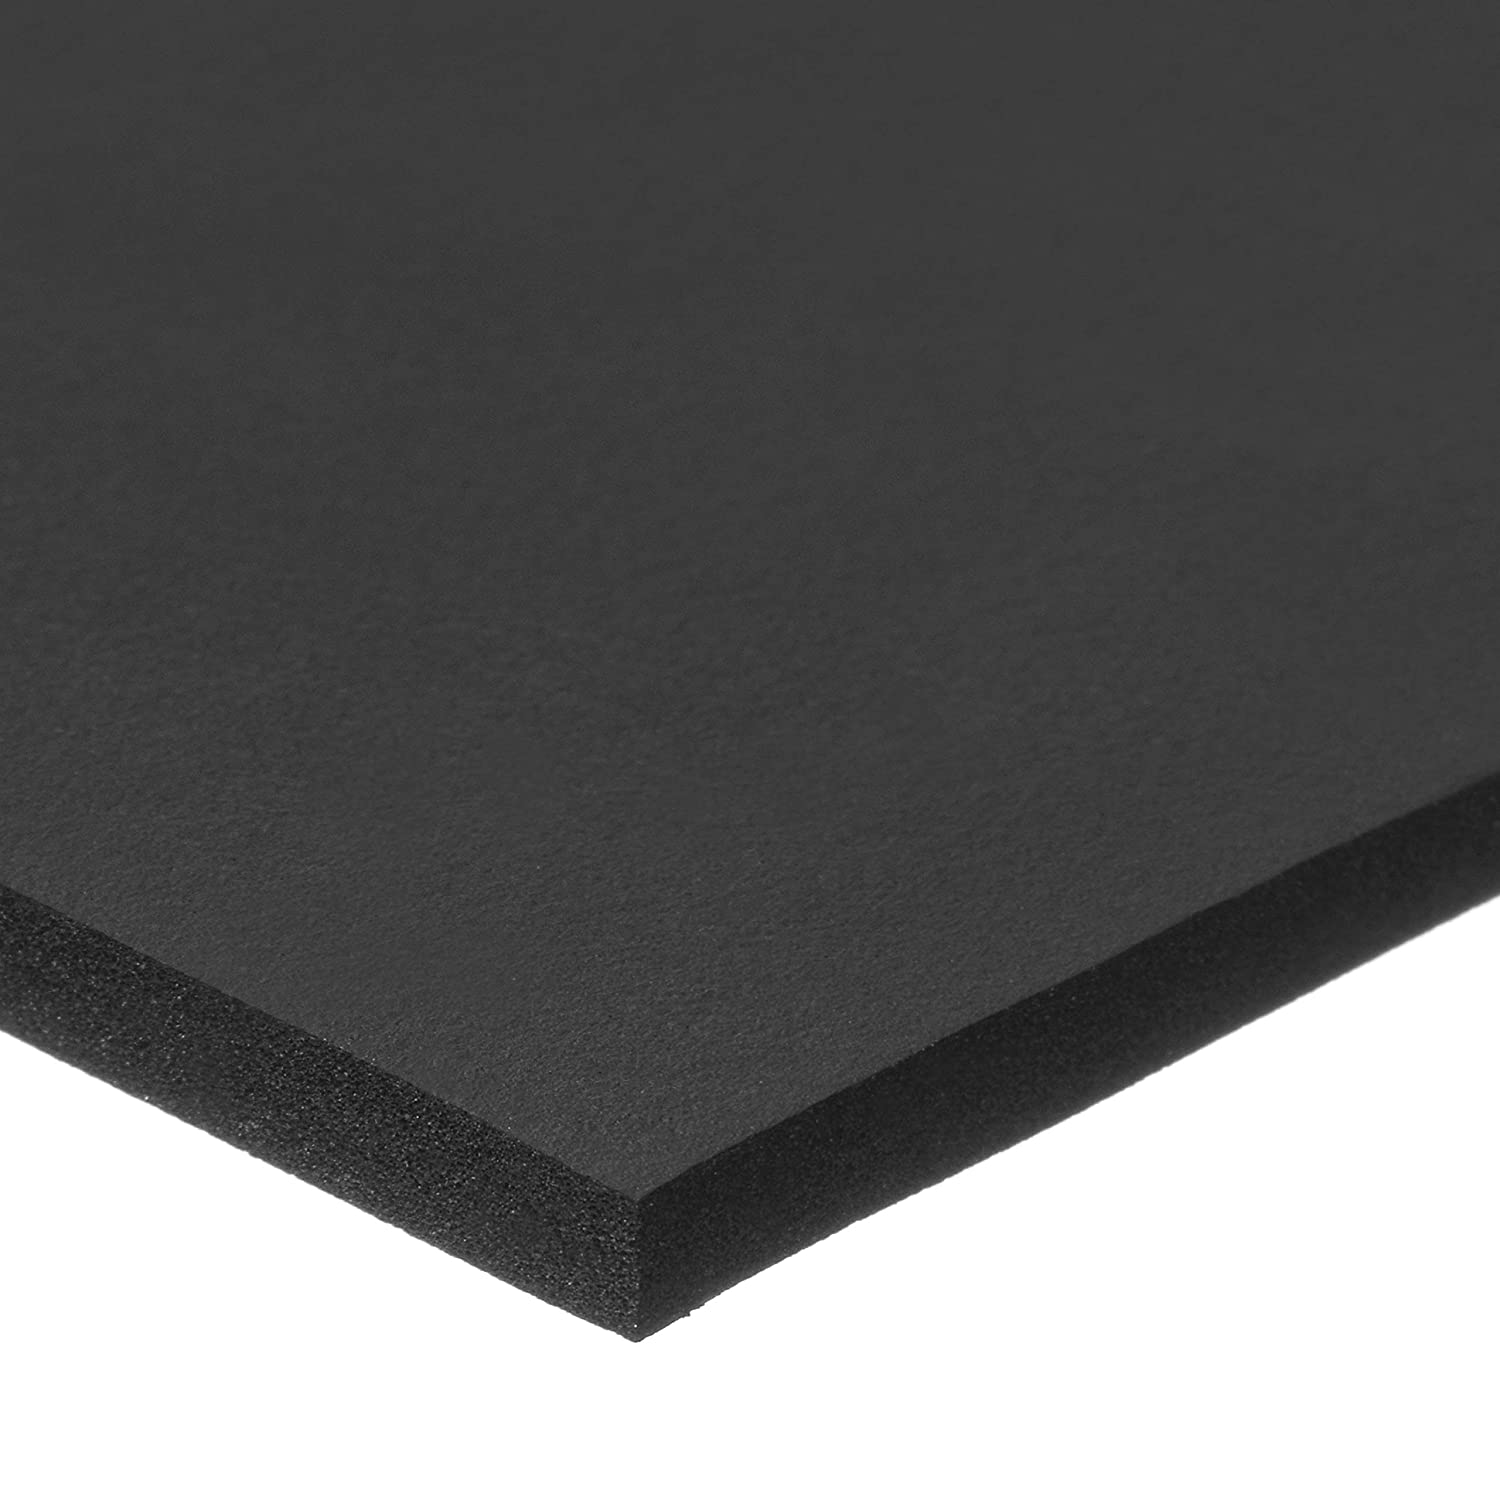 Deluxe USA Limited time sale Sealing Neoprene Foam Sheet with Acrylic Adhesive on Both Si